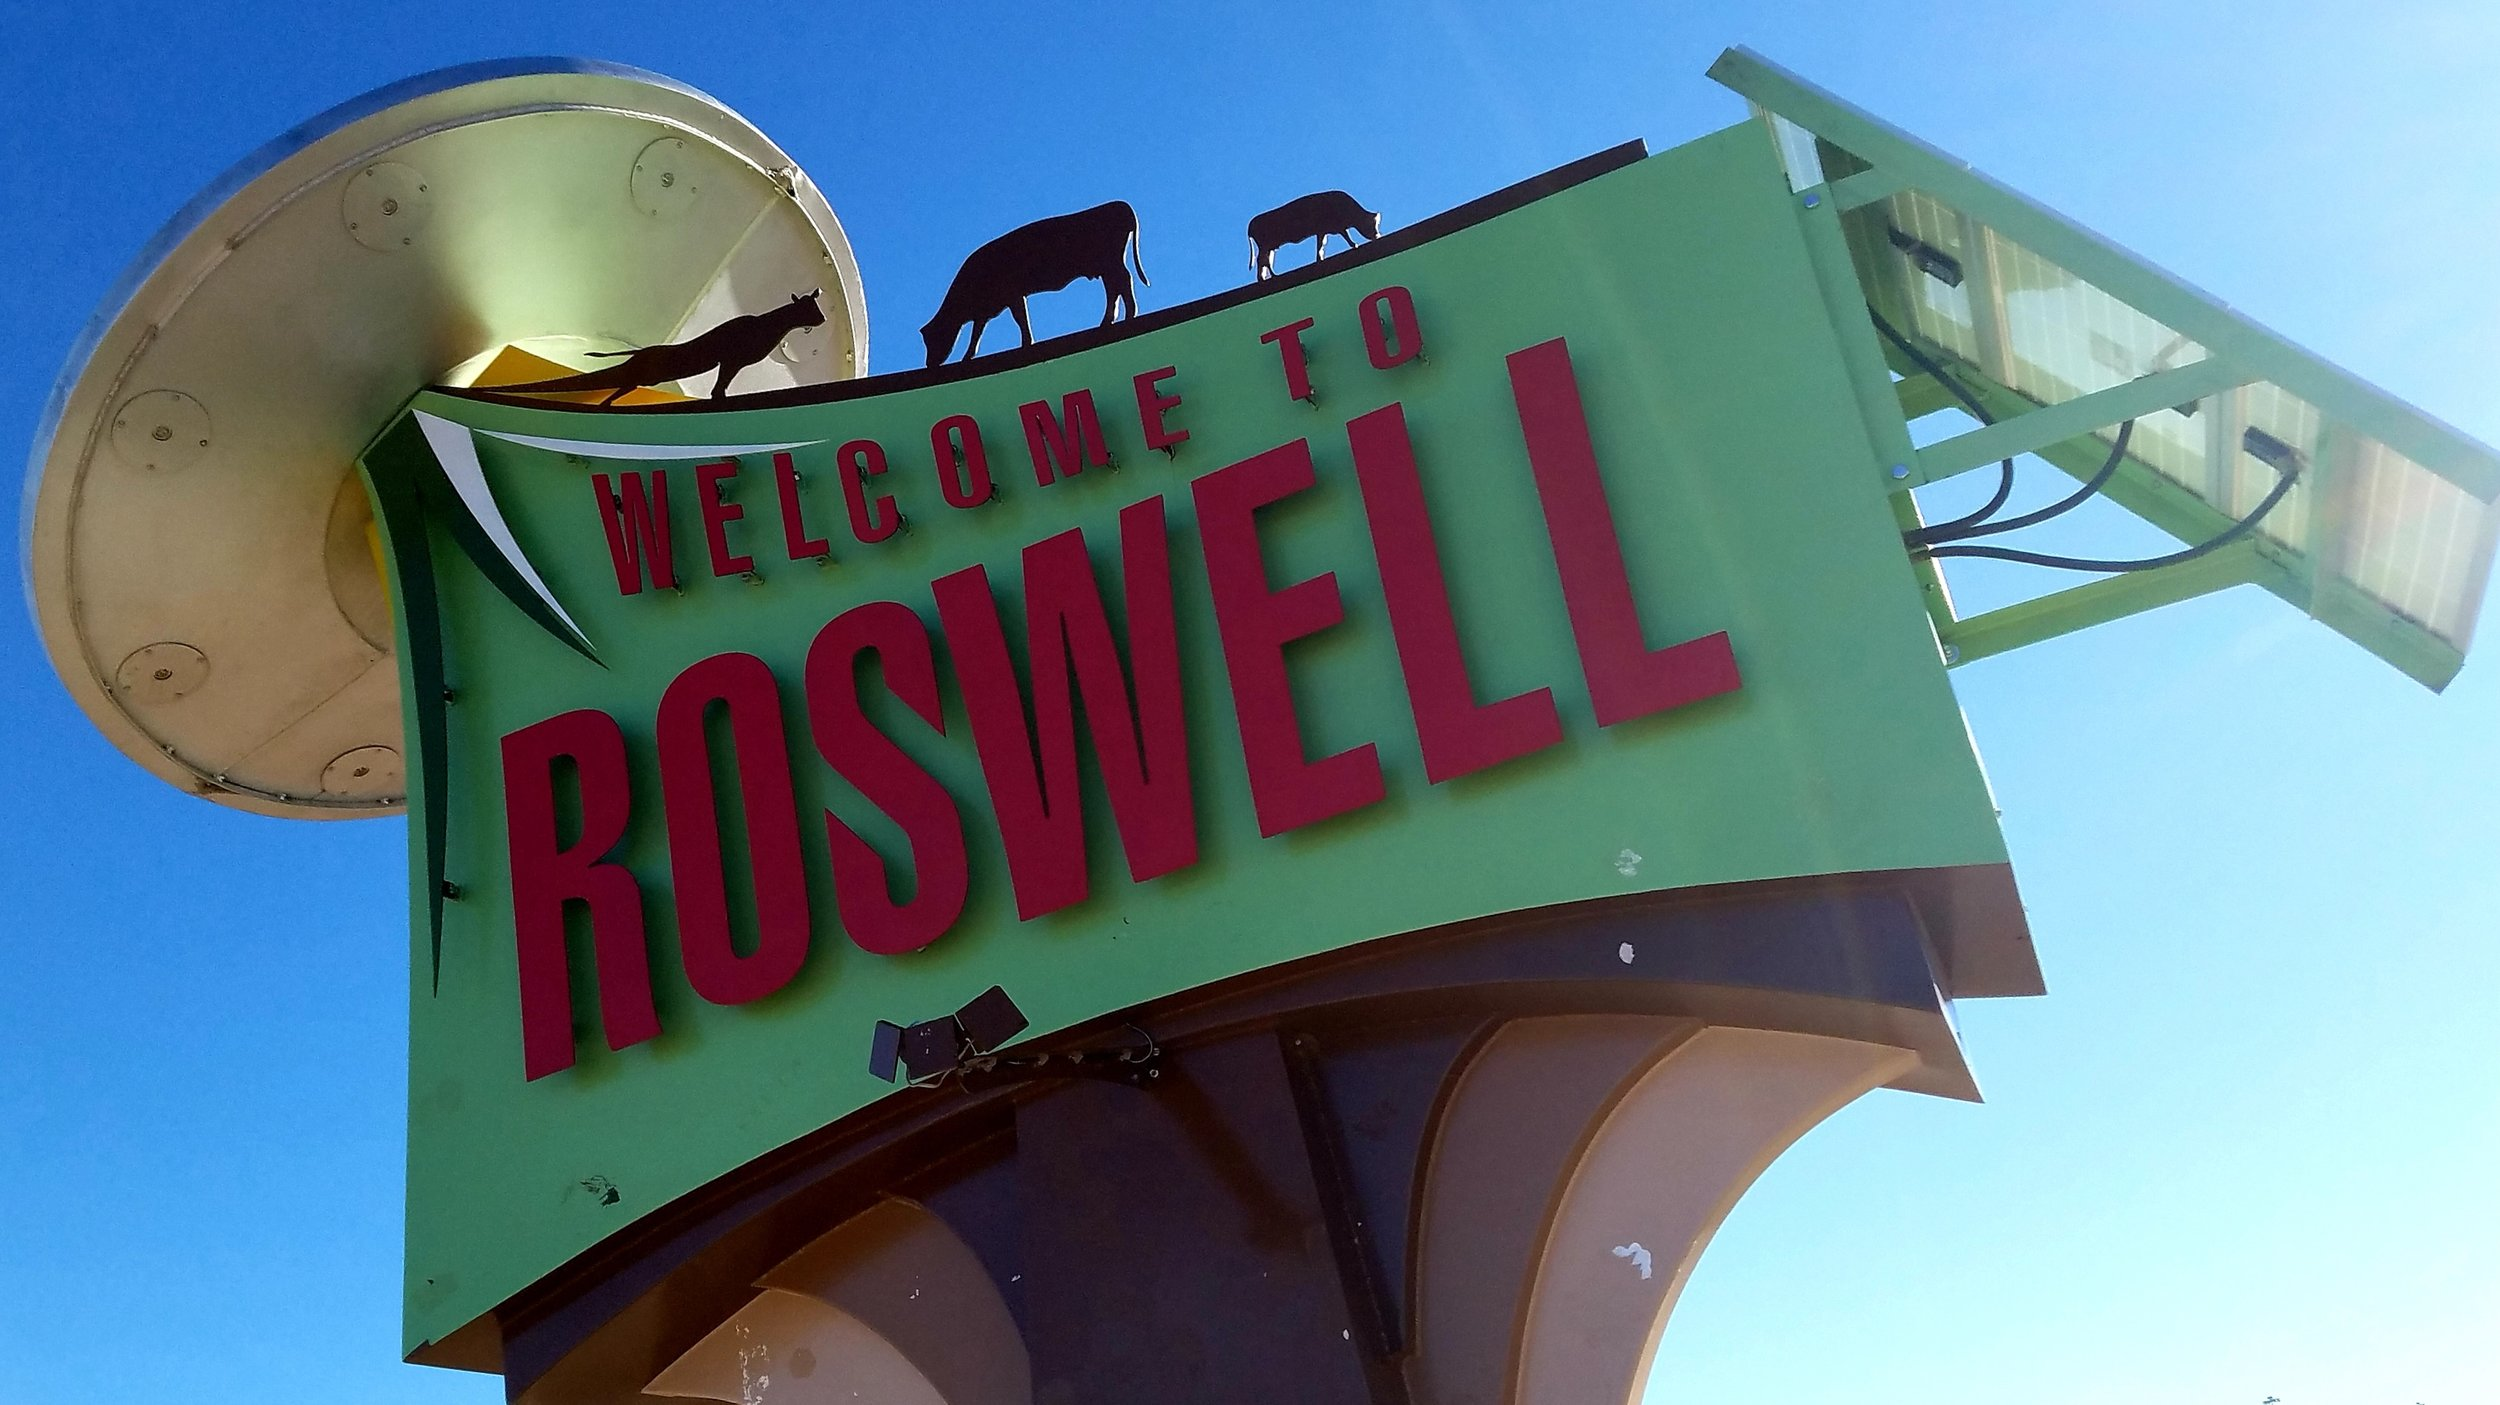 SABMG DERAVILLE WELCOME ROSWELL MAX FUCHS.jpeg